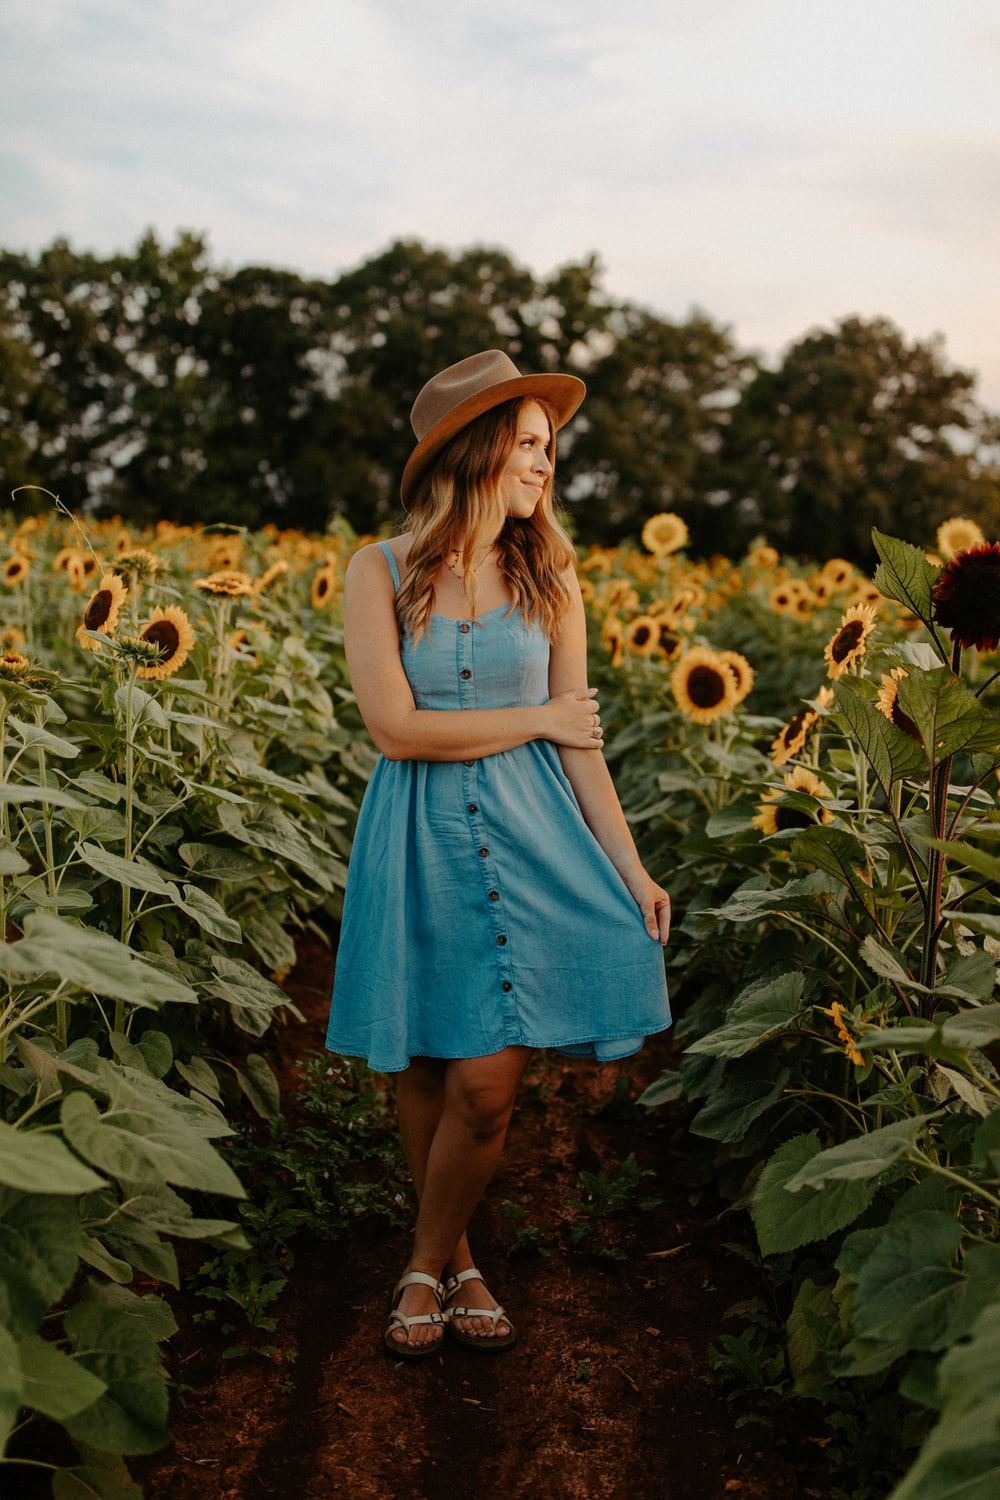 woman in blue dress standing on green grass field during daytime